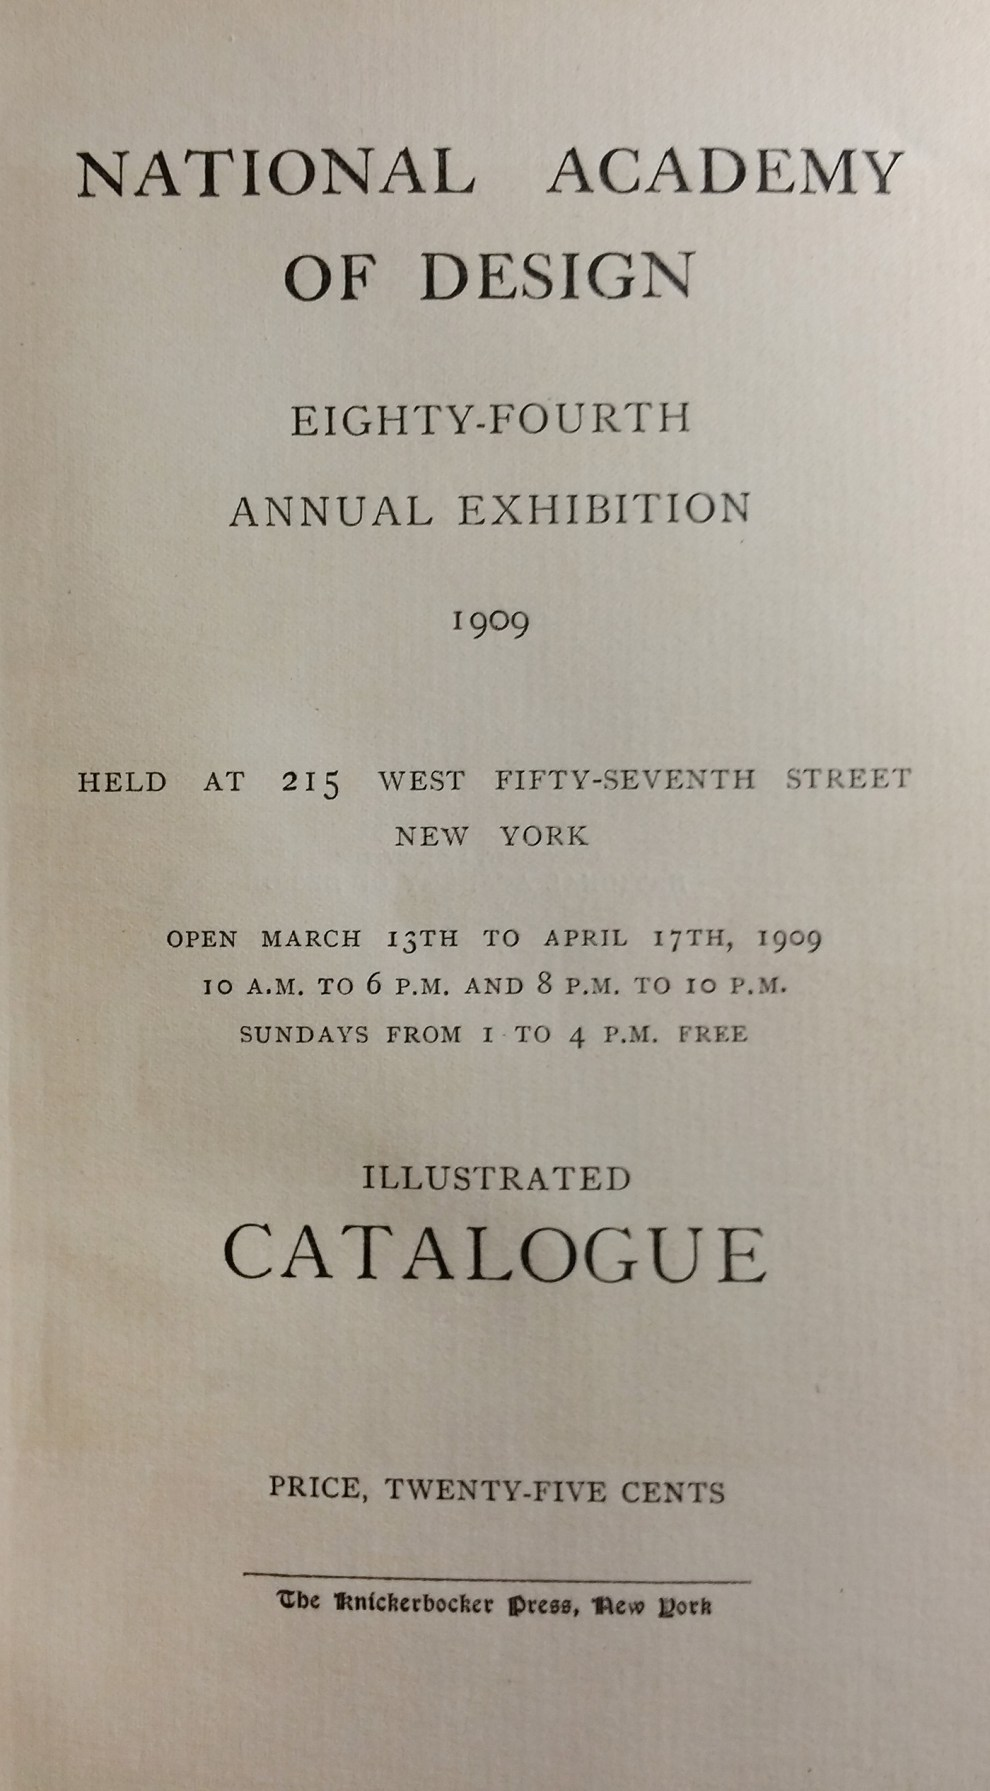 "1909 National Academy of Design, New York, NY, ""Eighty-Fourth Annual Exhibition"", March 15 - April 17"